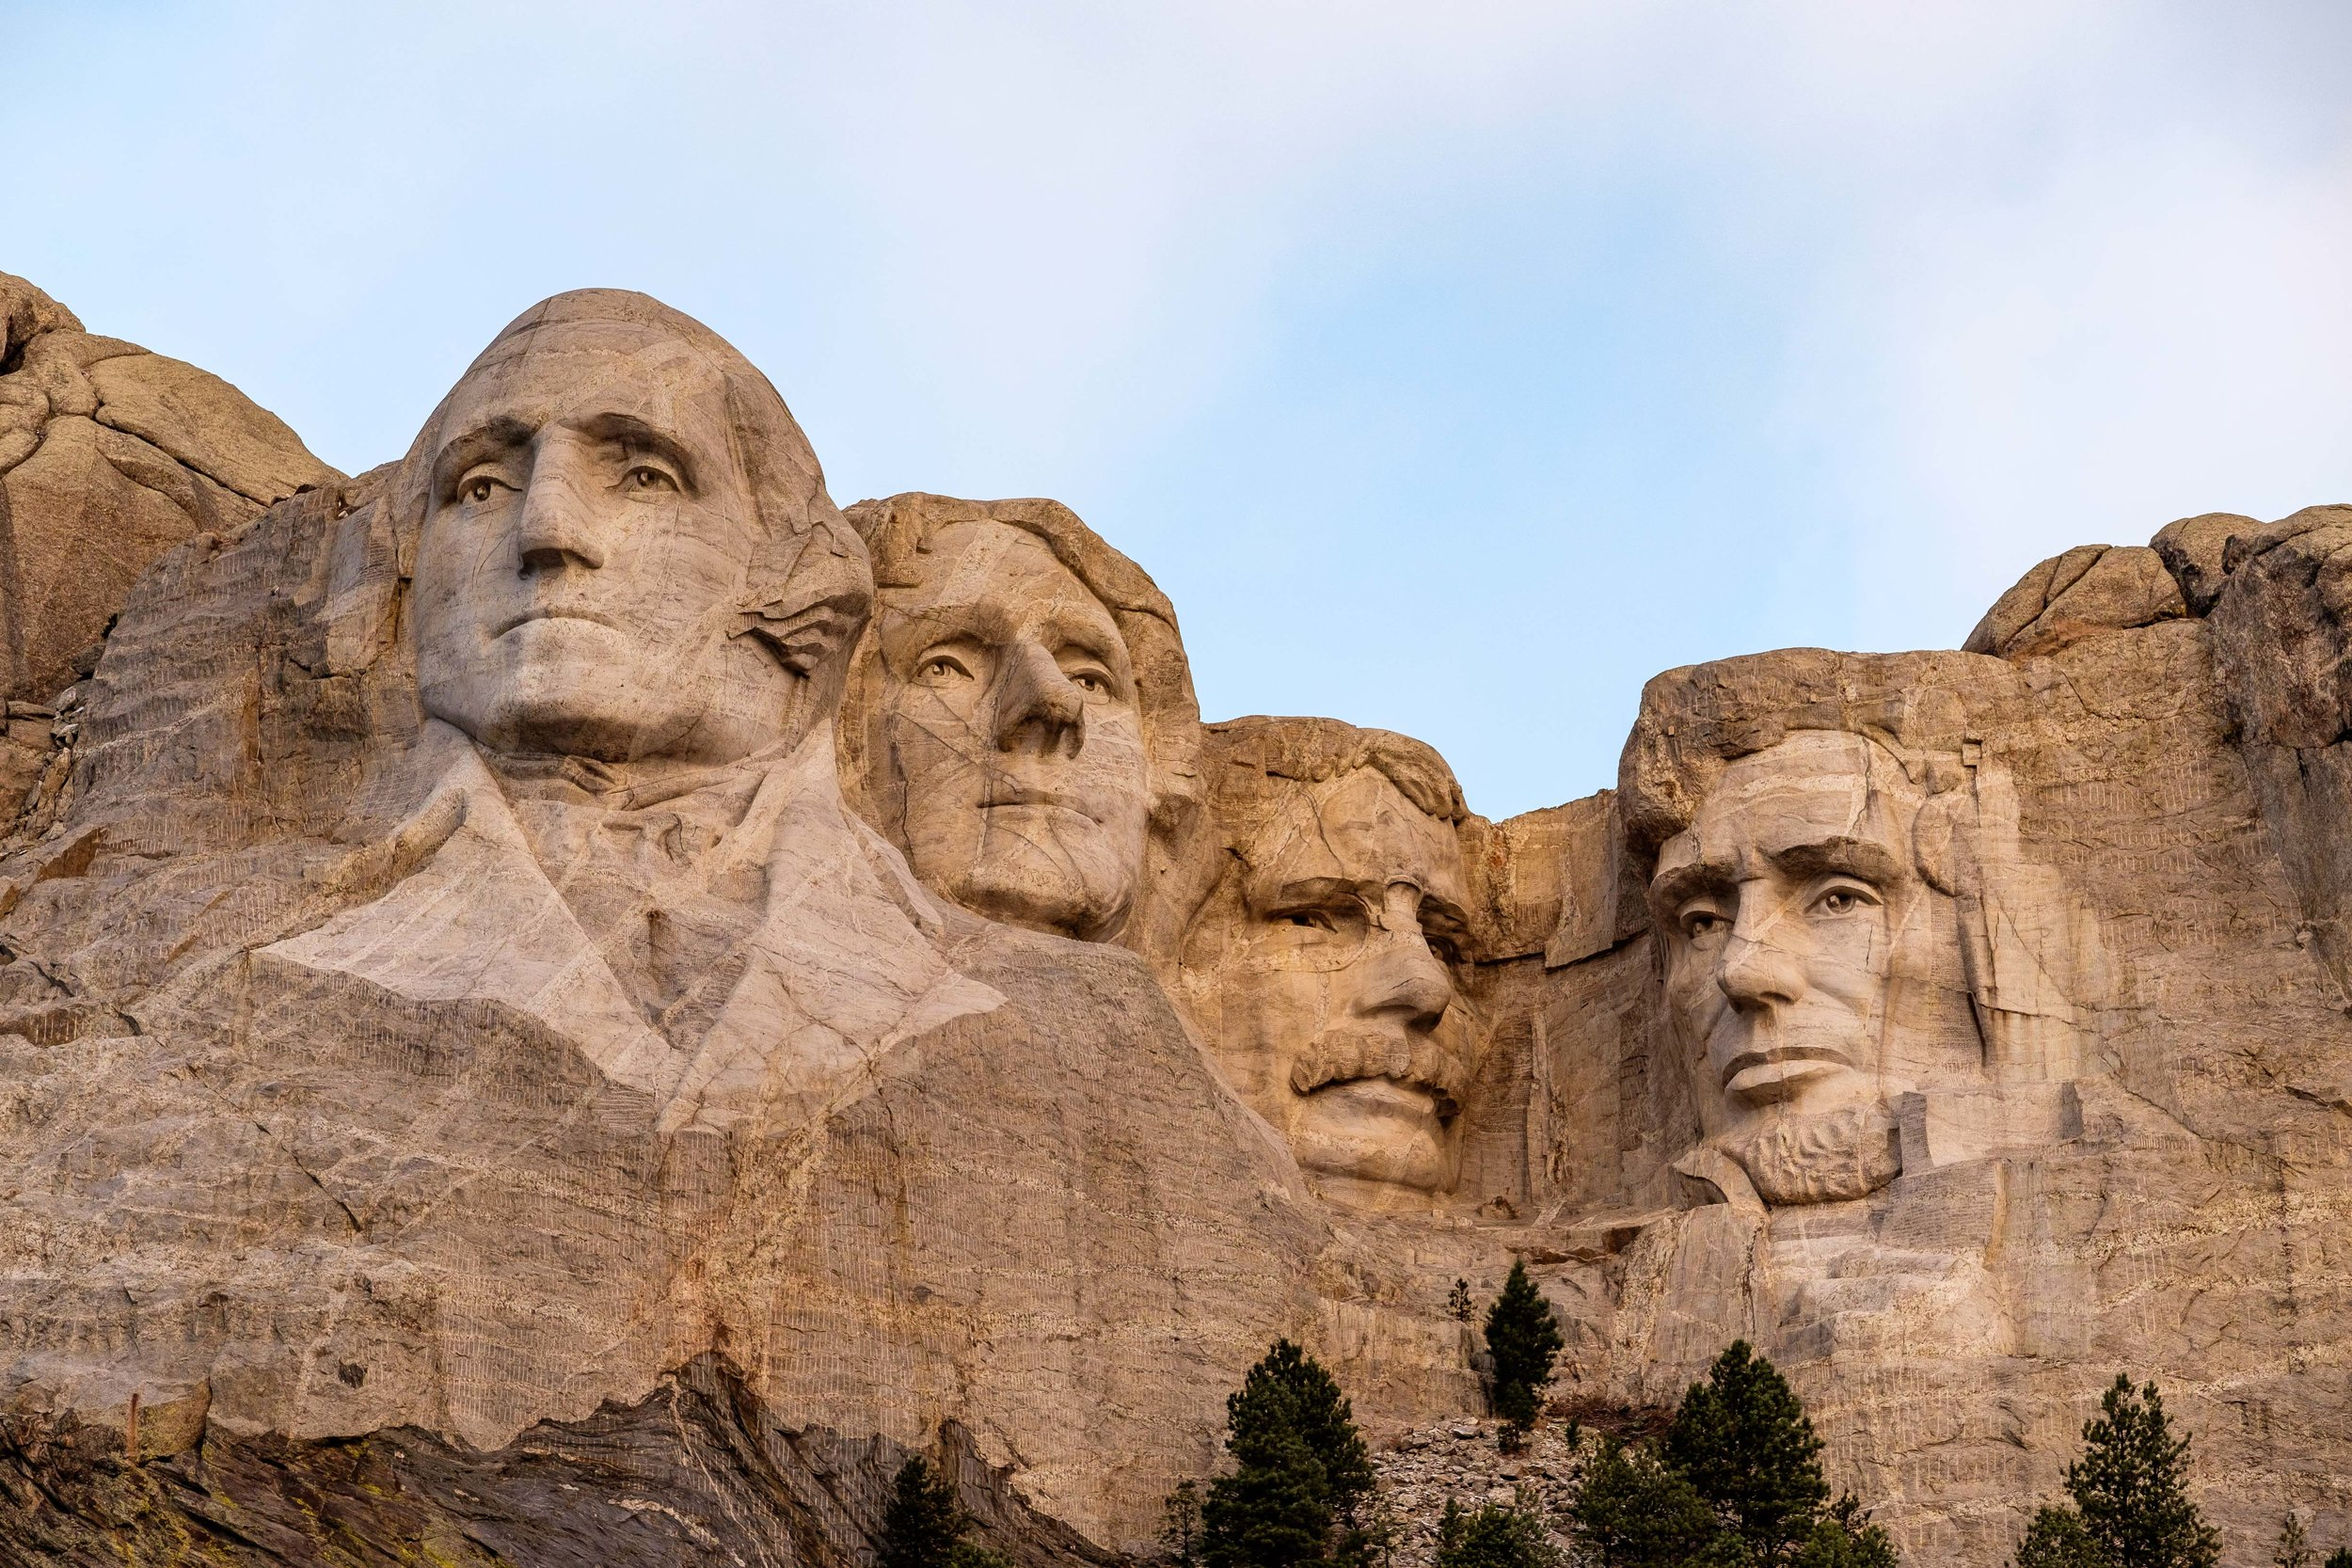 Mount Rushmore located 87 miles west of the Badlands depicts 60-ft. high granite carvings of Presidents George Washington, Thomas Jefferson, Theodore Roosevelt, and Abraham Lincoln.